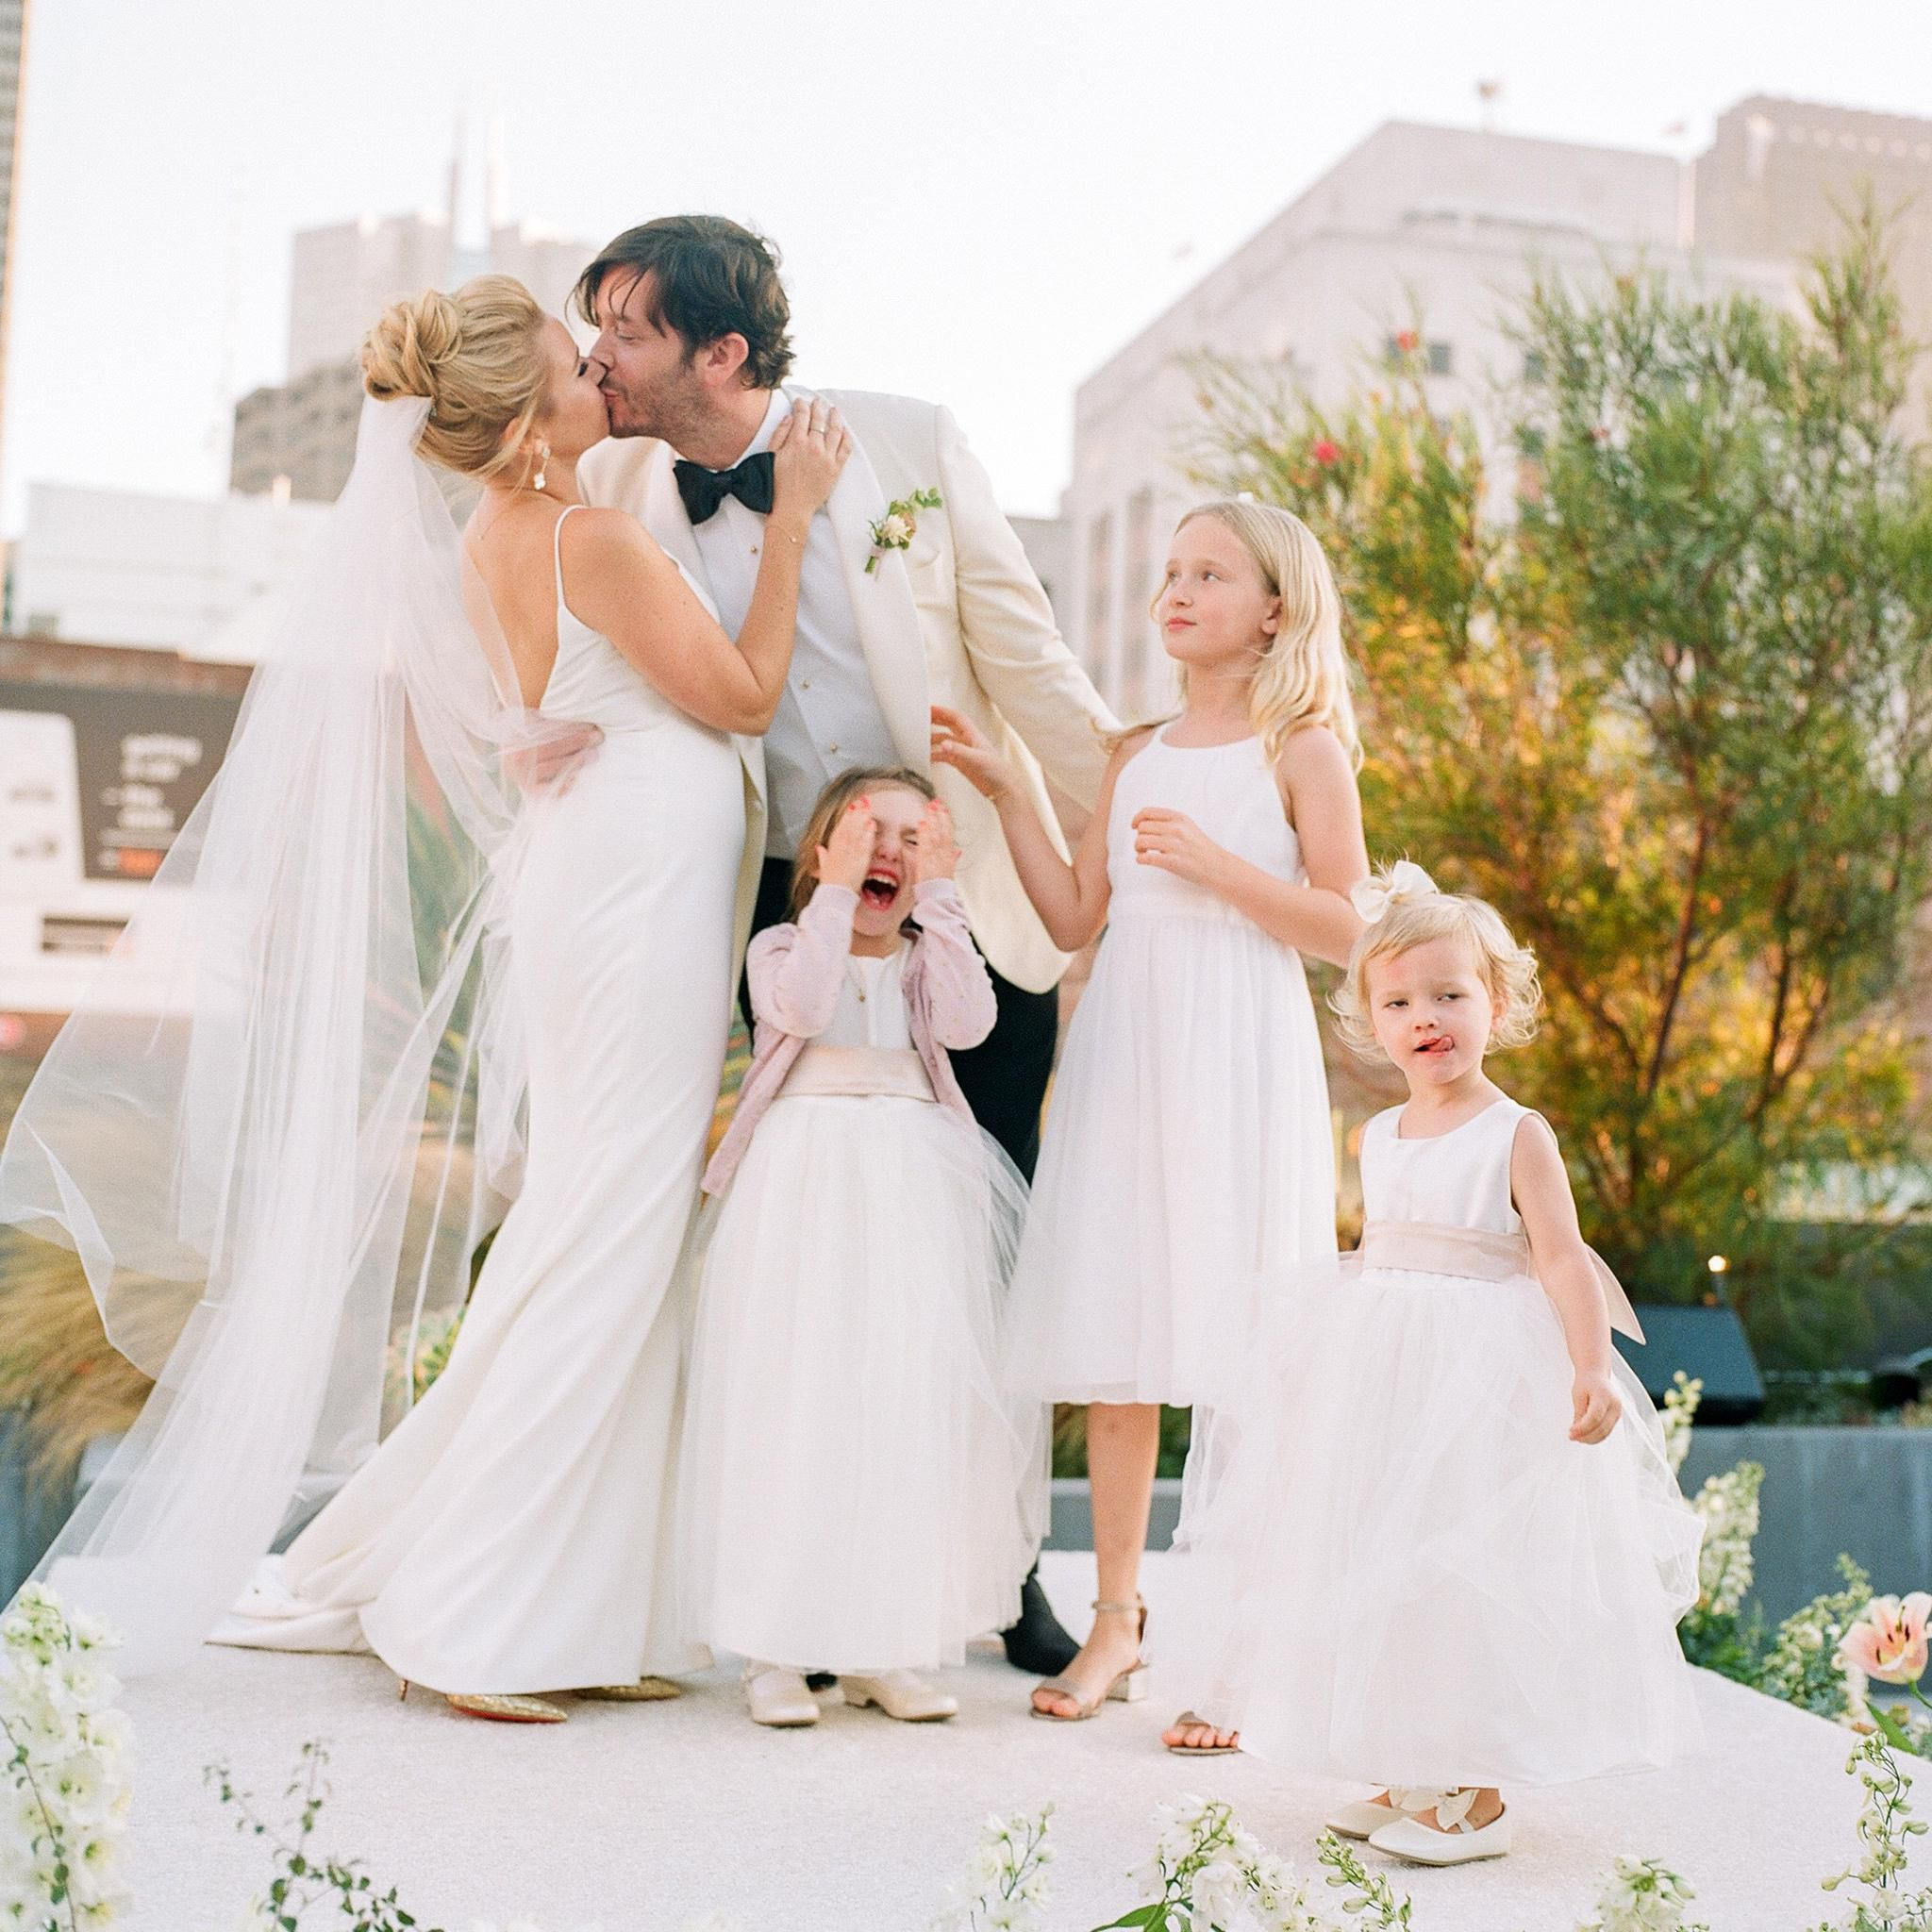 A Romantic Rooftop Wedding At The Battery In San Francisco